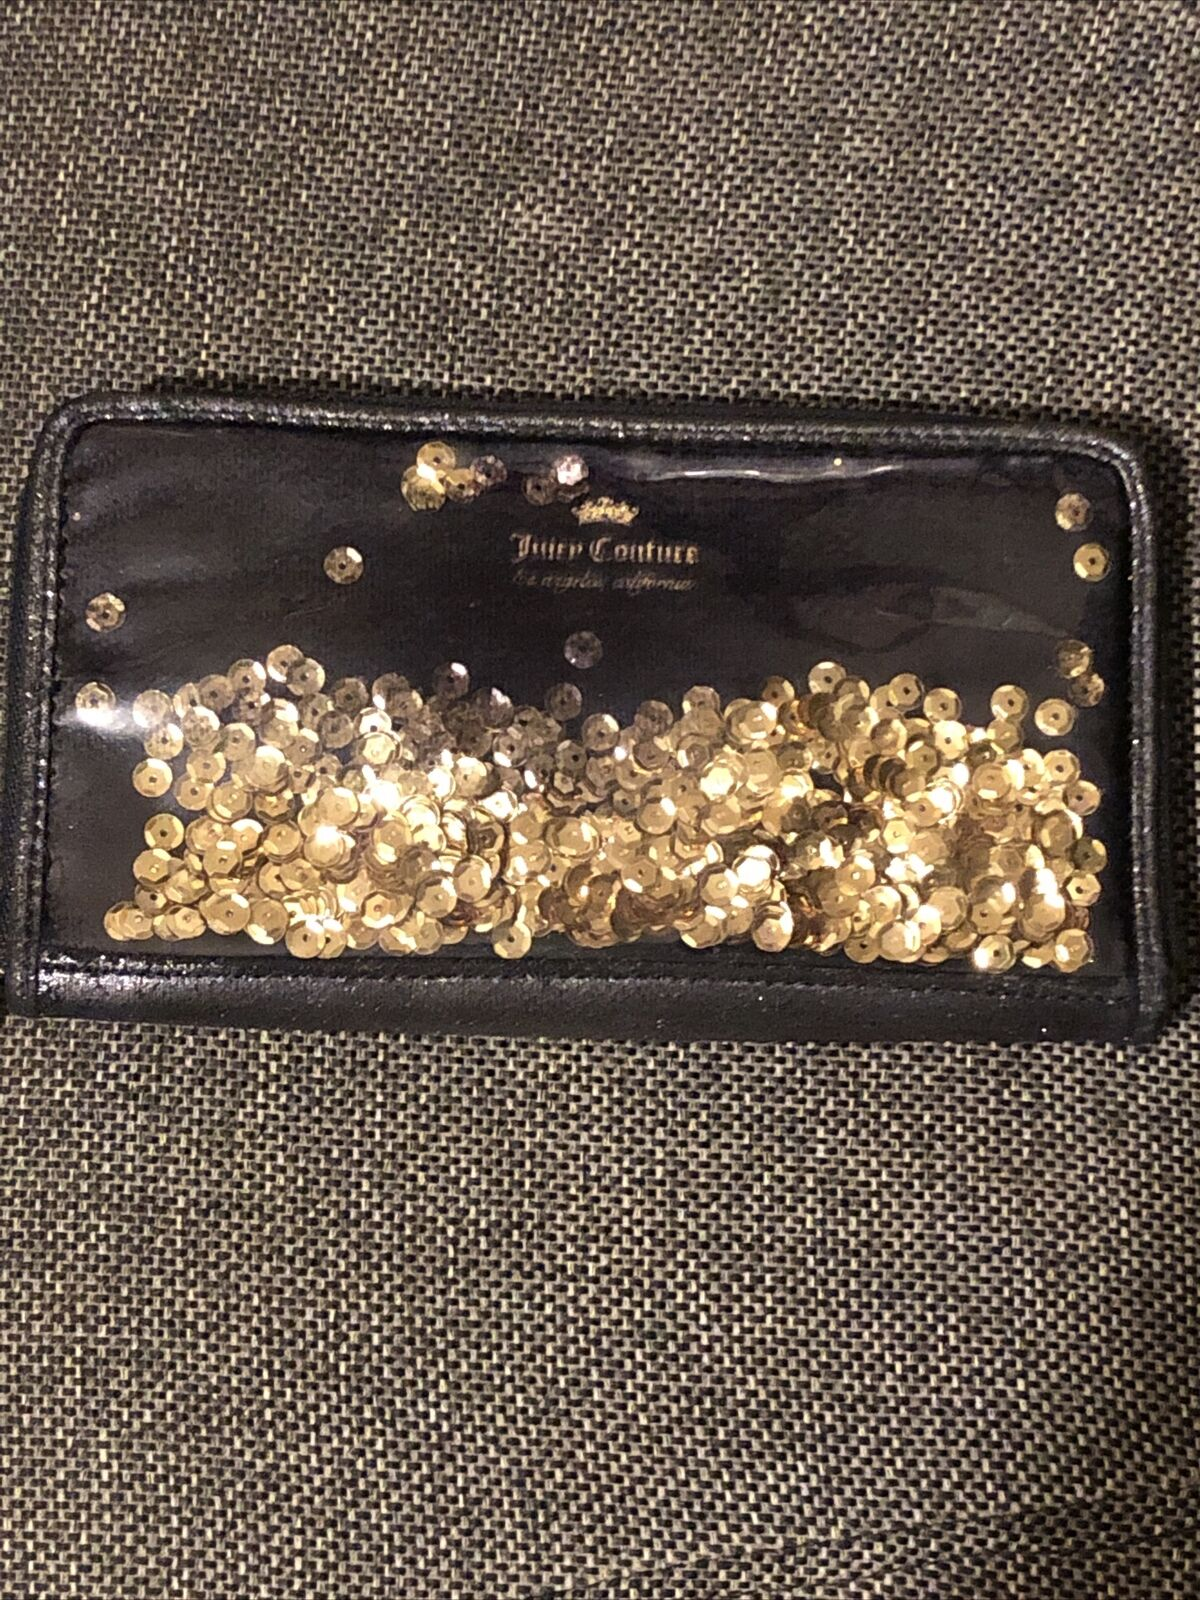 New JUICY COUTURE Los Angeles California Woman's Wallet Black RN#108833